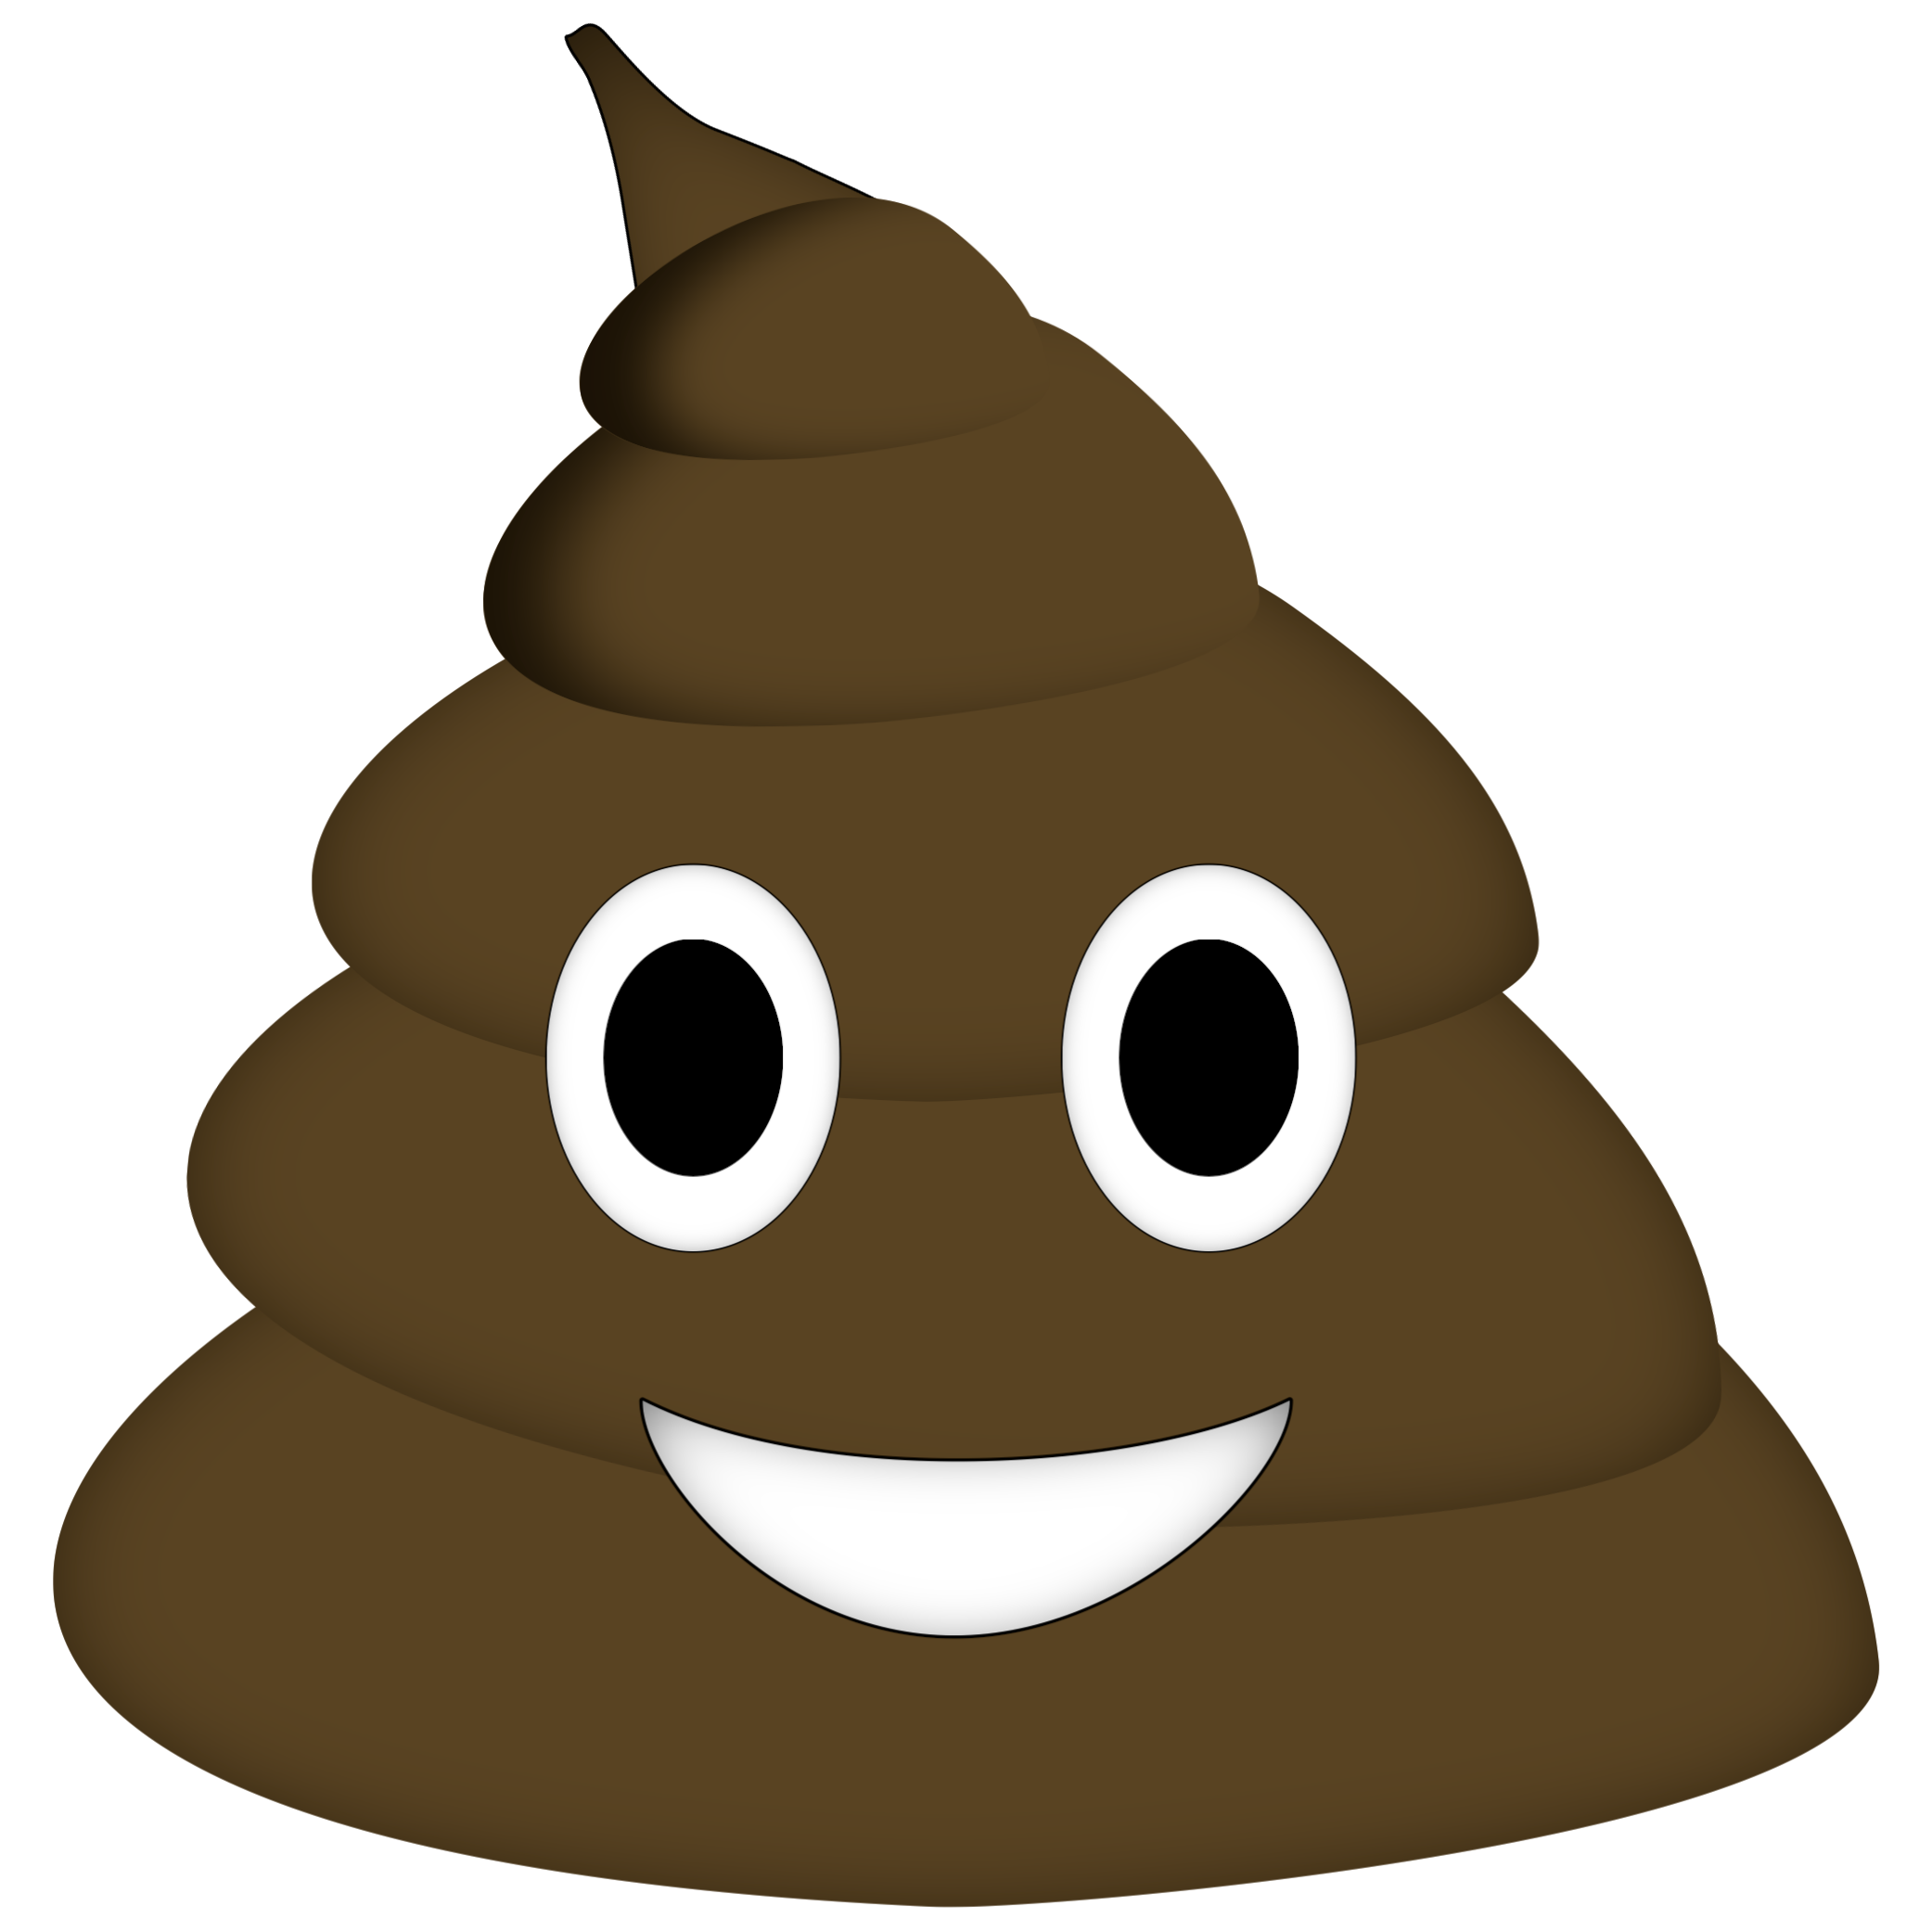 emojis drawing poo